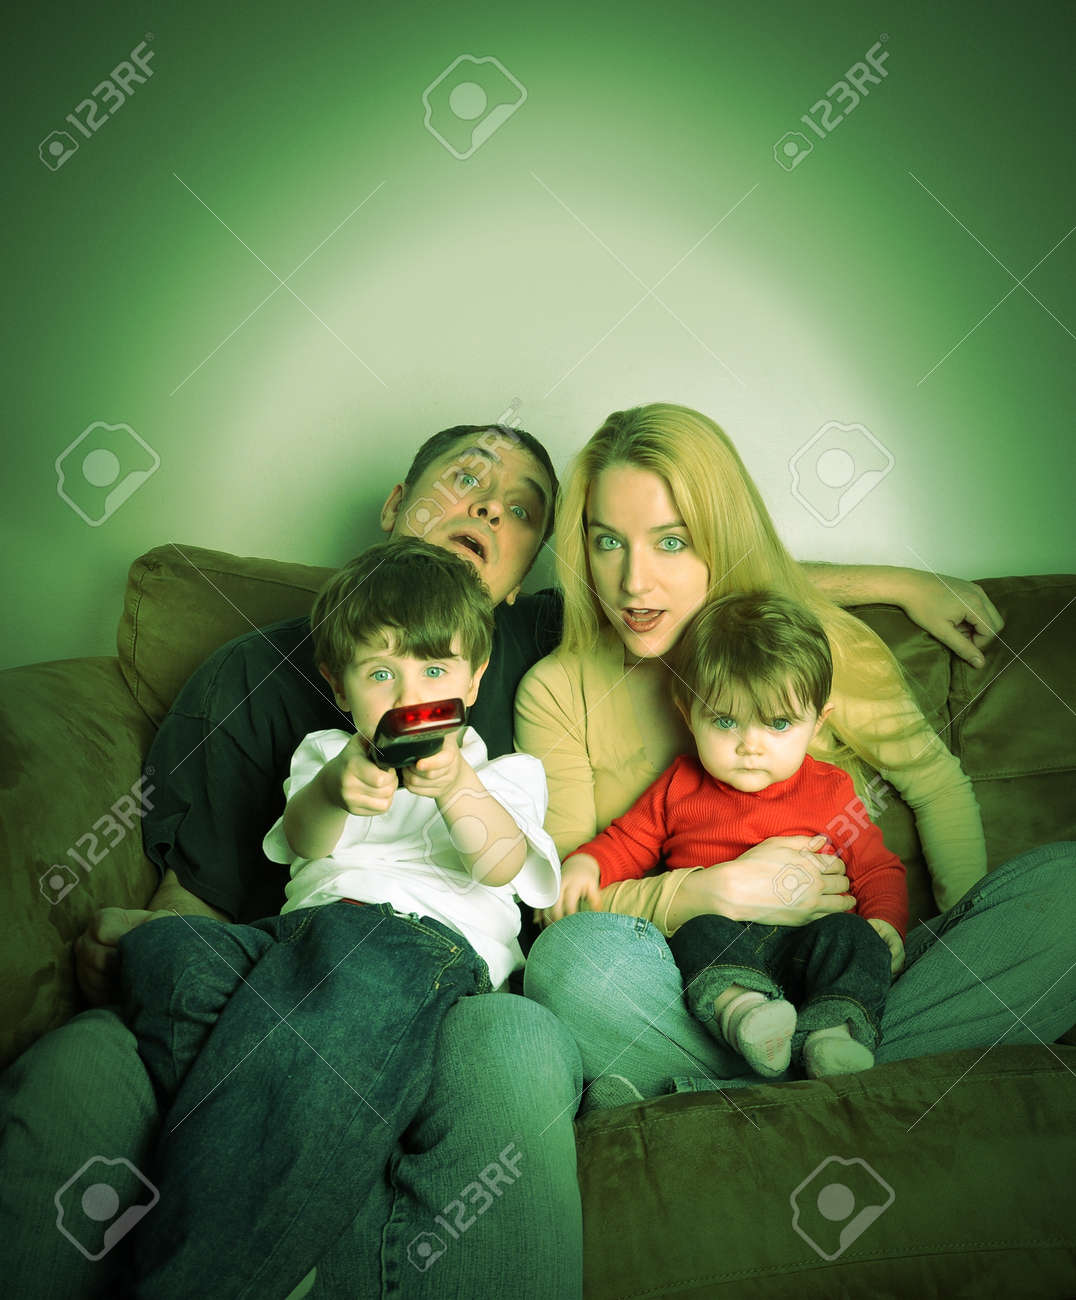 A family is watching television together on a couch and look shocked at what they see. Stock Photo - 17343940